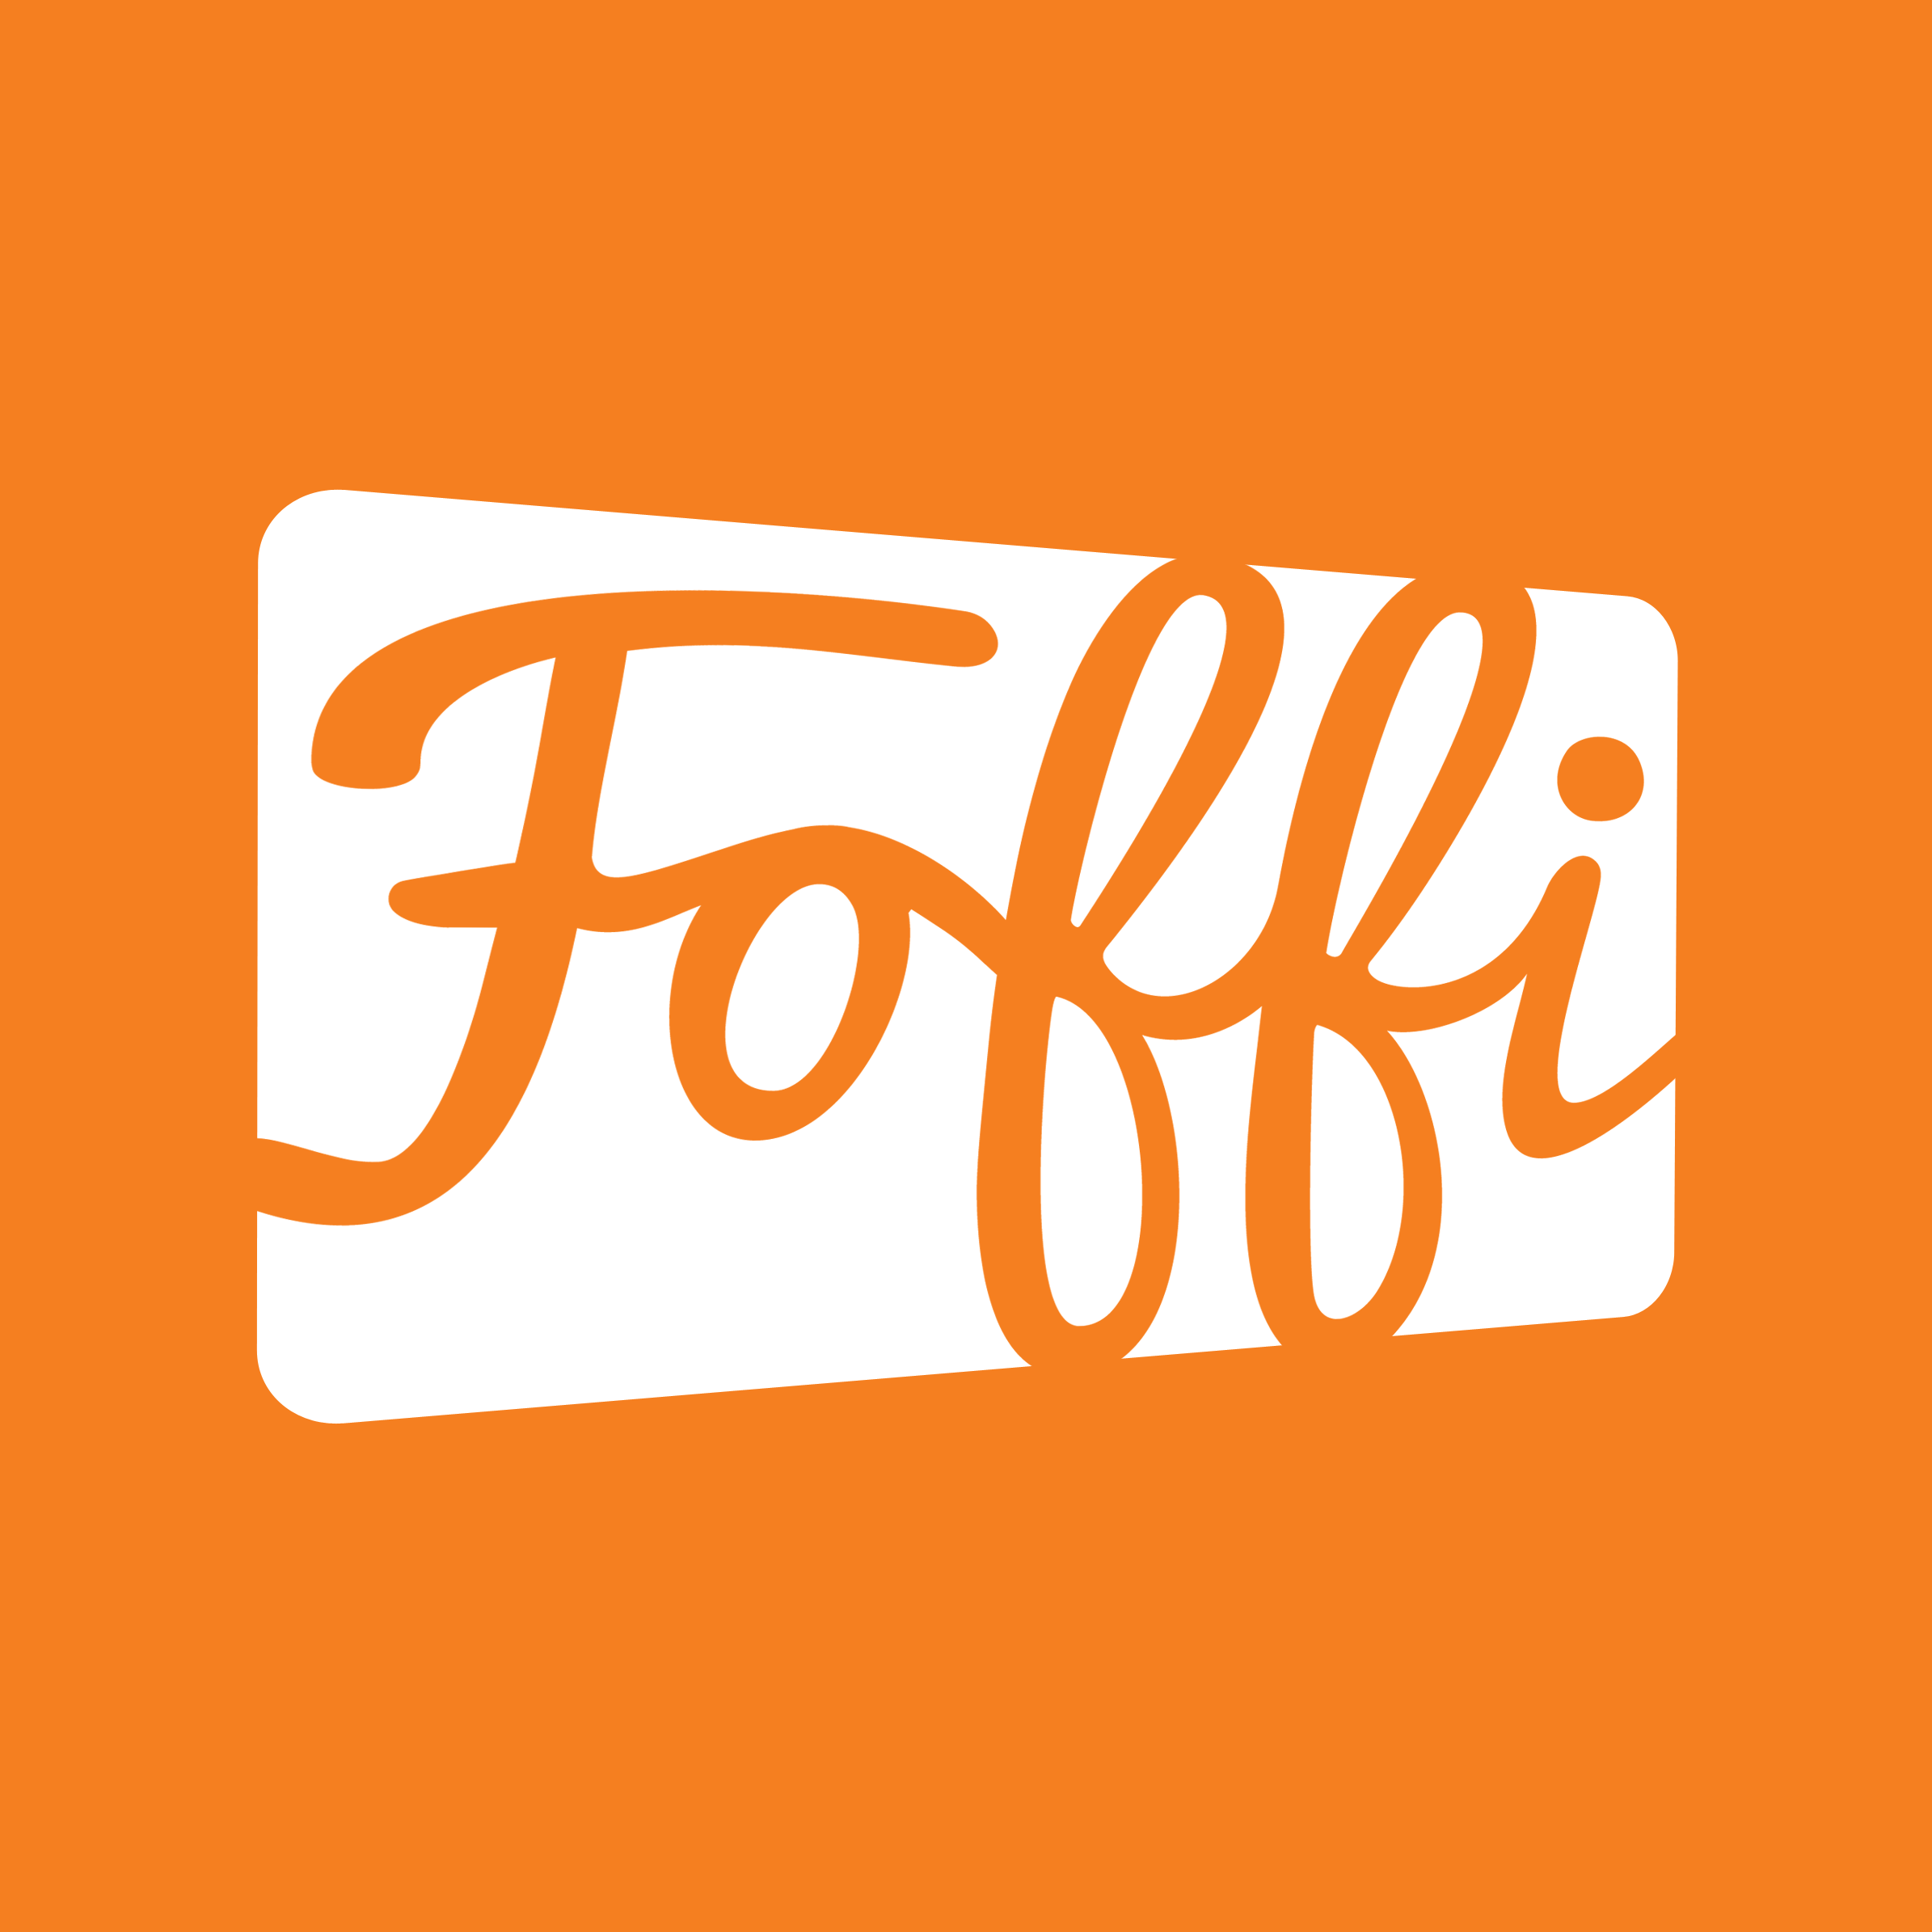 Foffi - Los Angeles Web Design